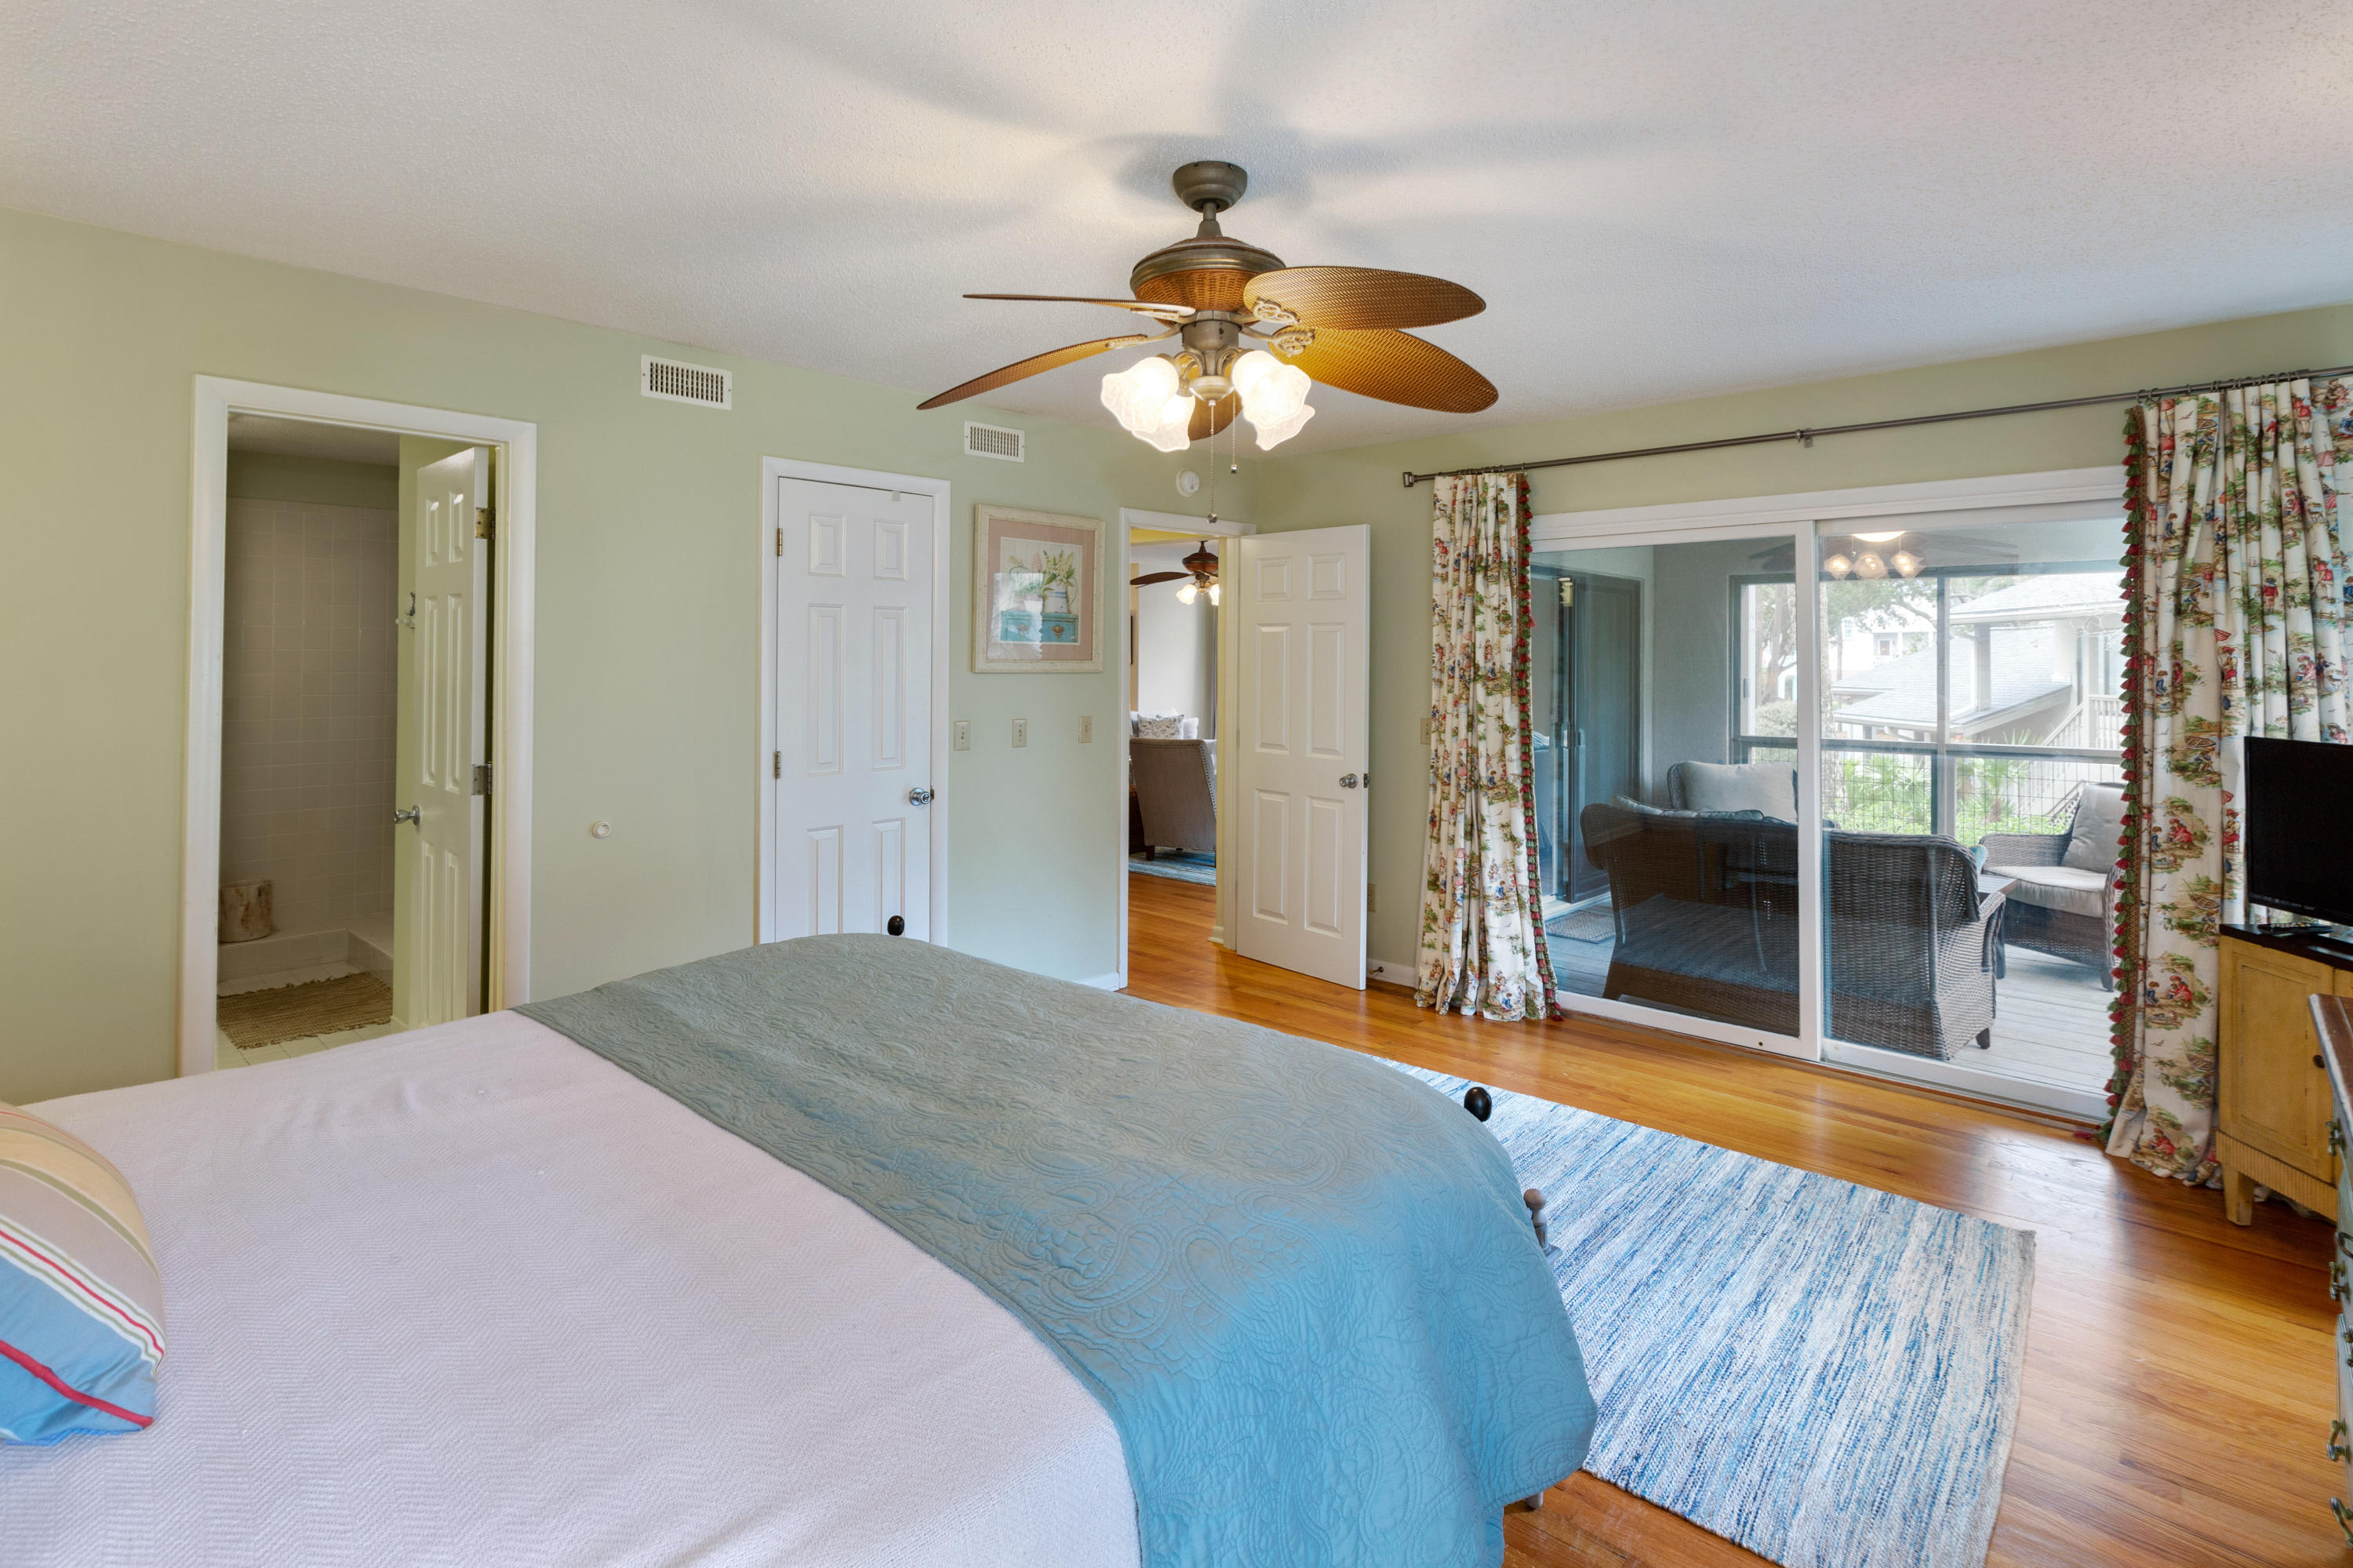 Wild Dunes Homes For Sale - 401 Yacht Harbor, Isle of Palms, SC - 9